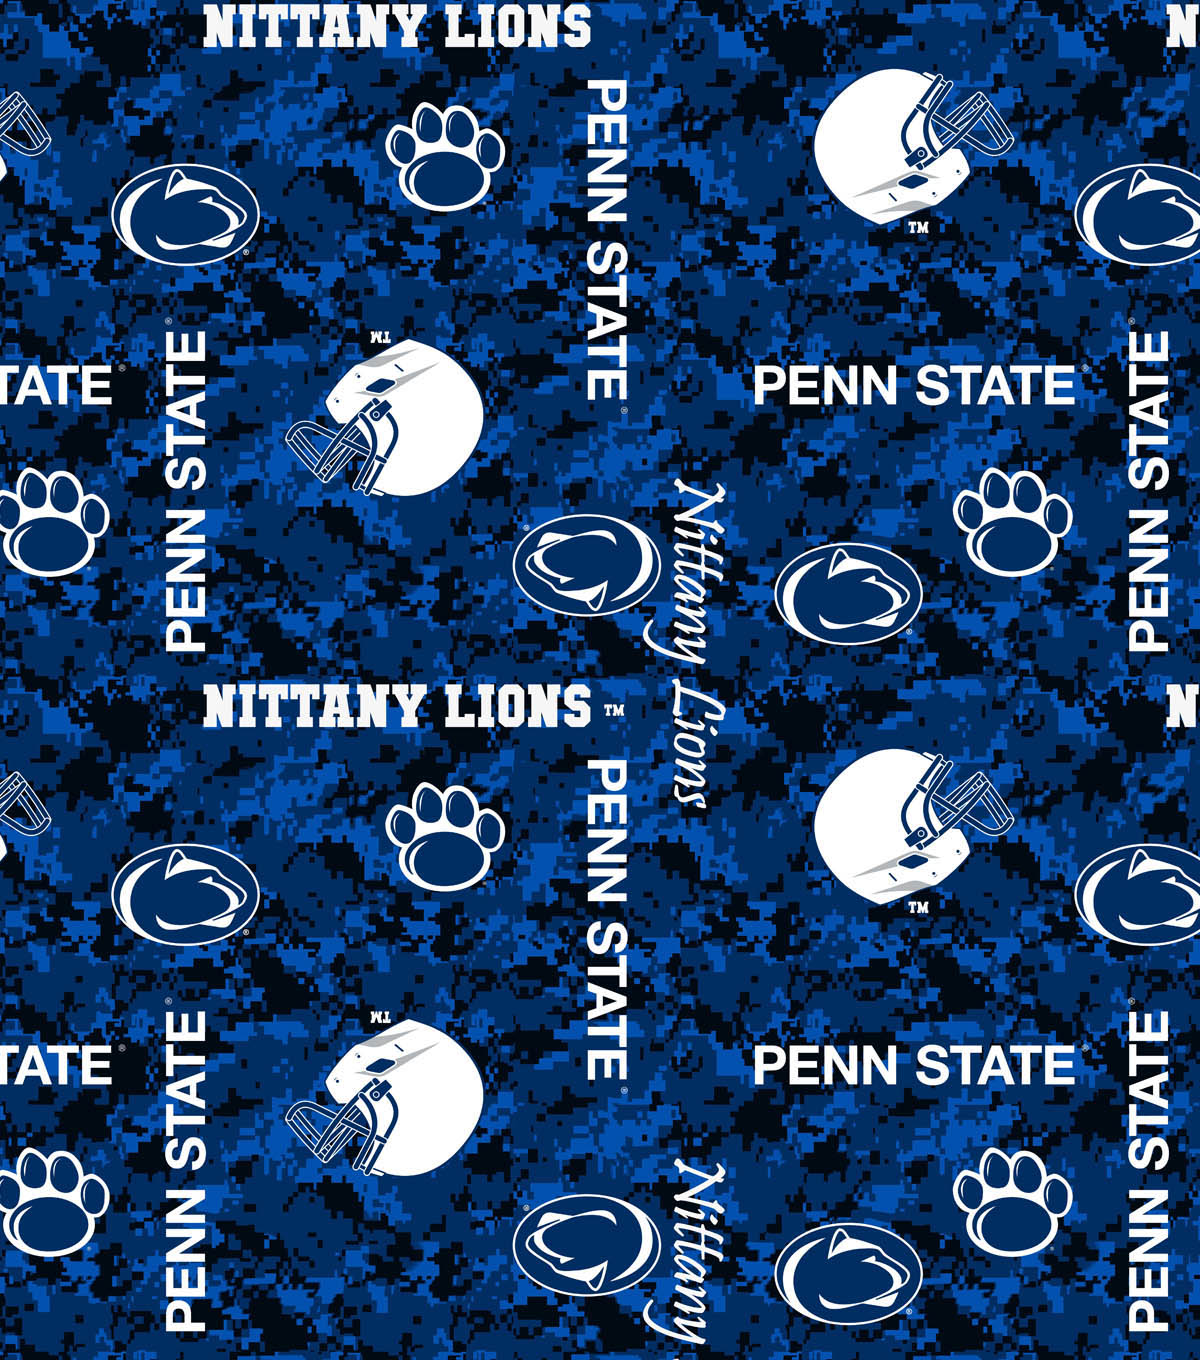 Penn State University Nittany Lions Fleece Fabric -Digital